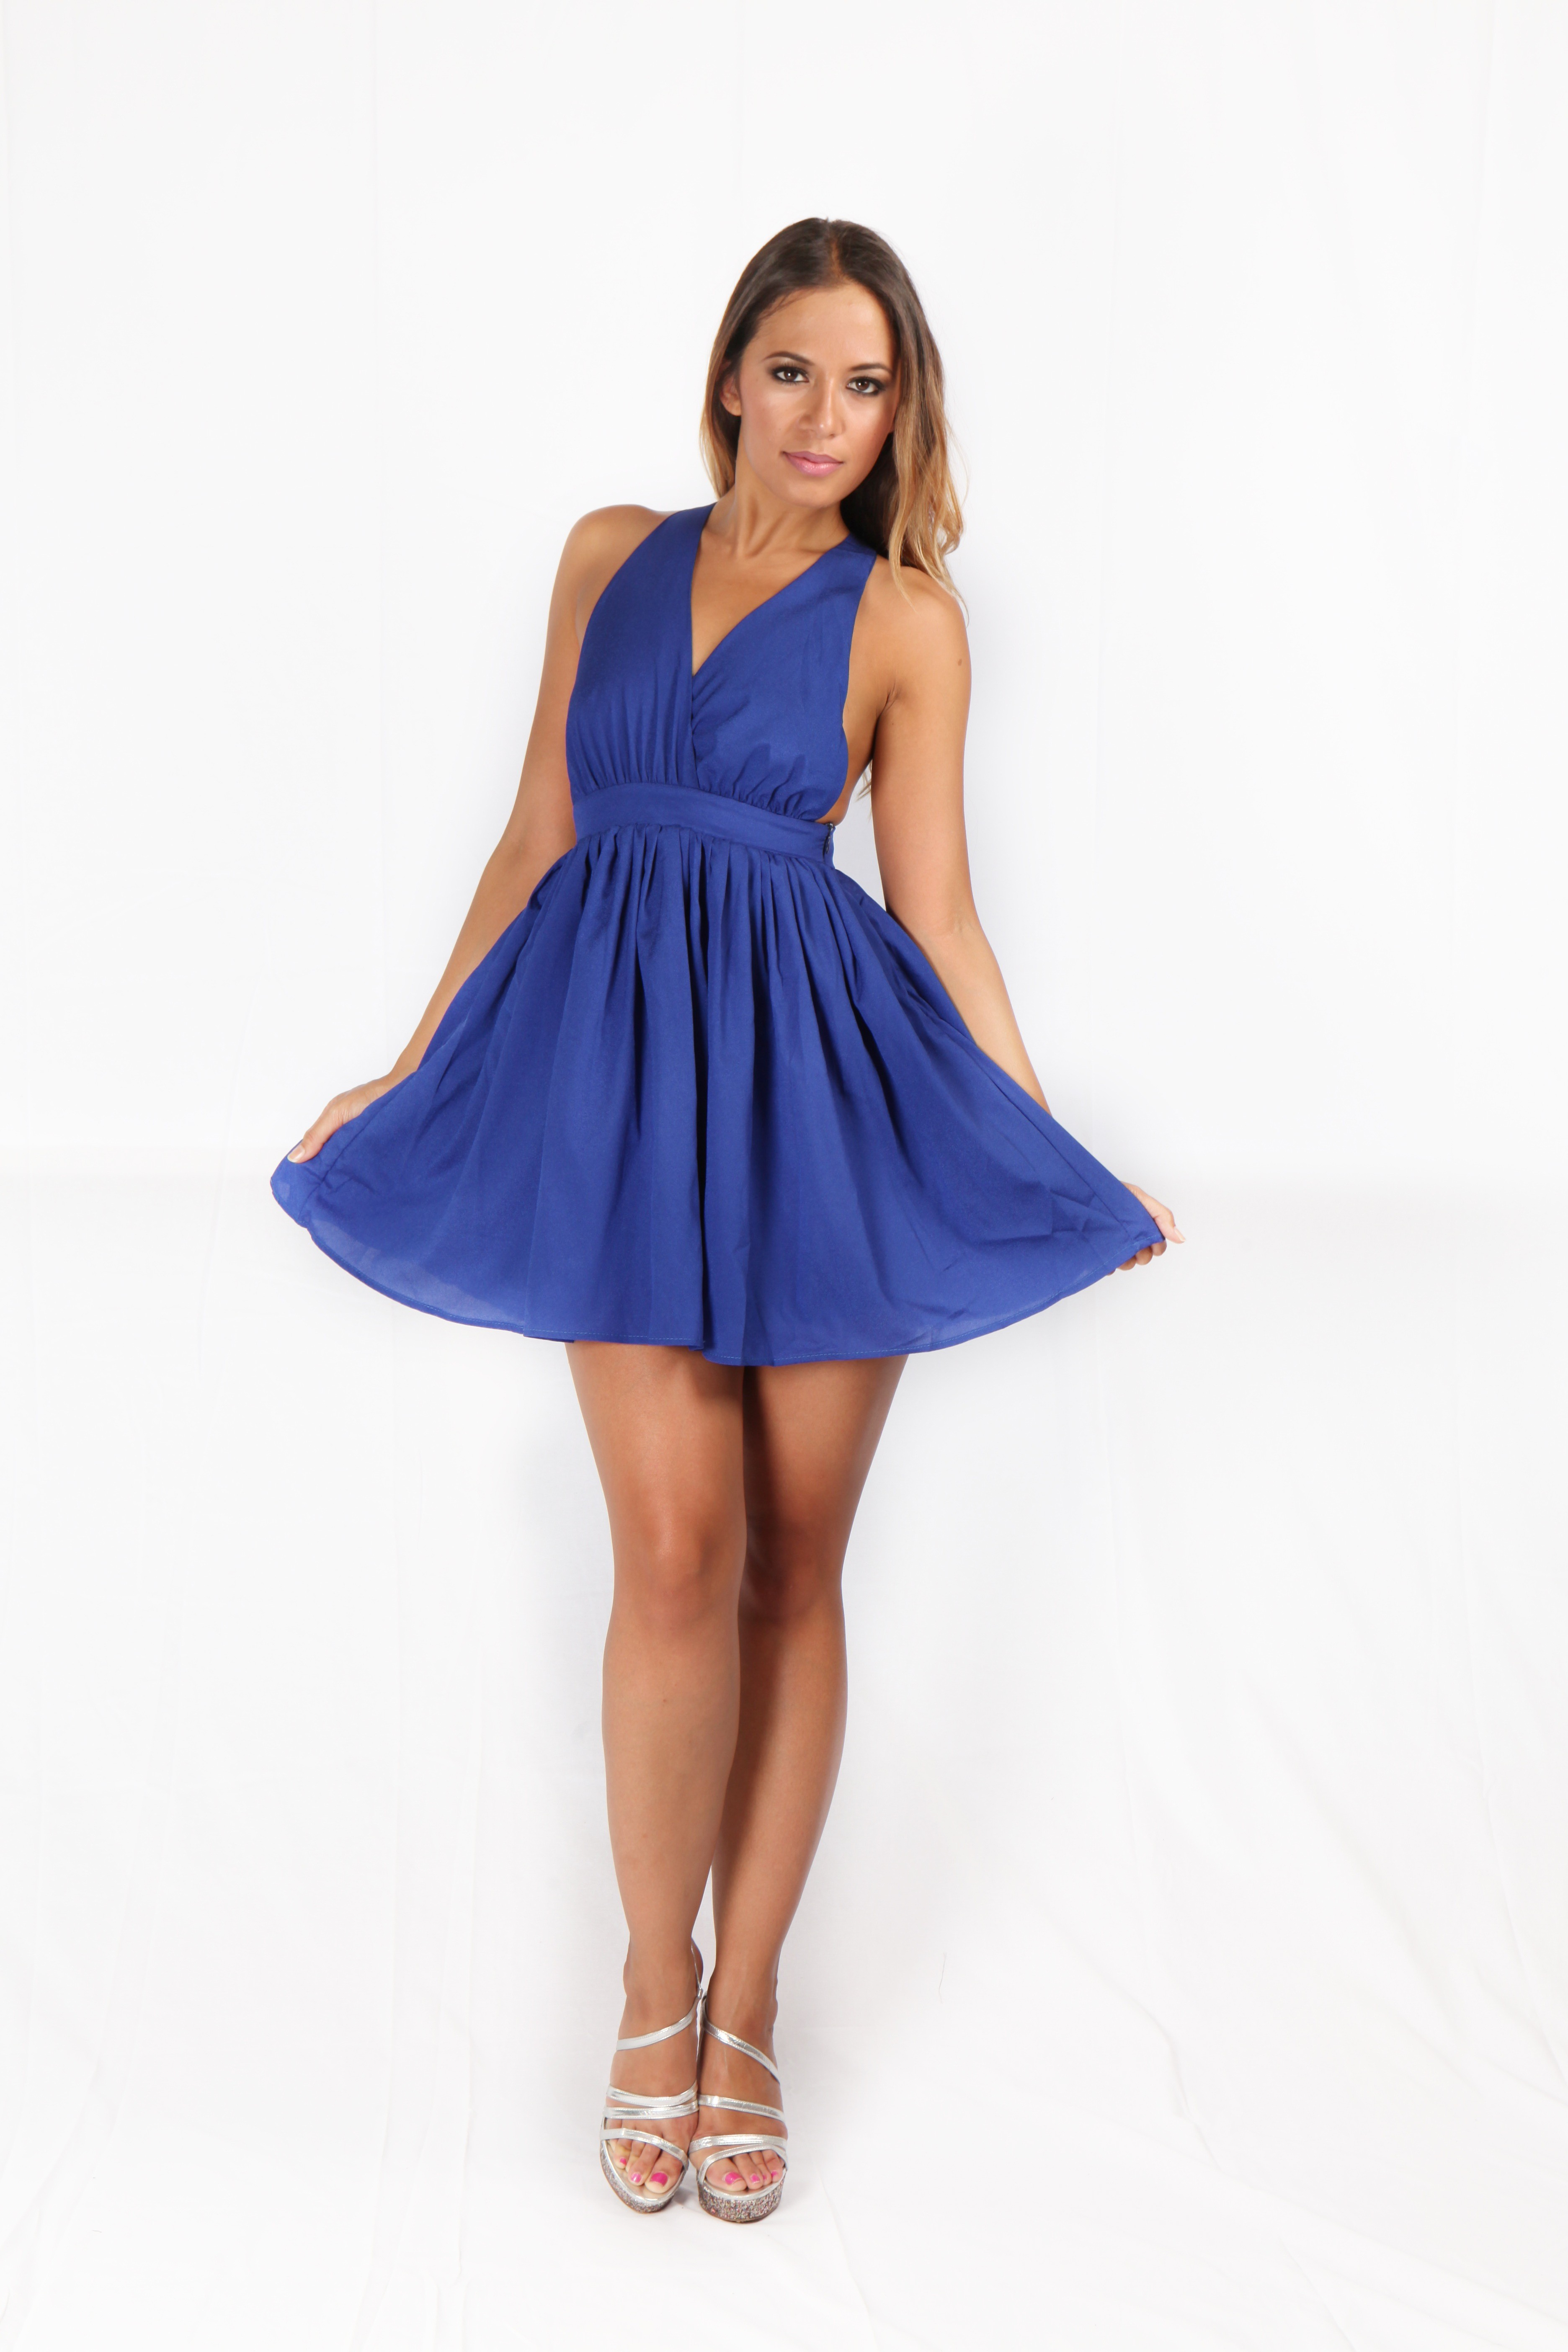 Blue Backless V Neck Skater Dress with Backless Cross Back